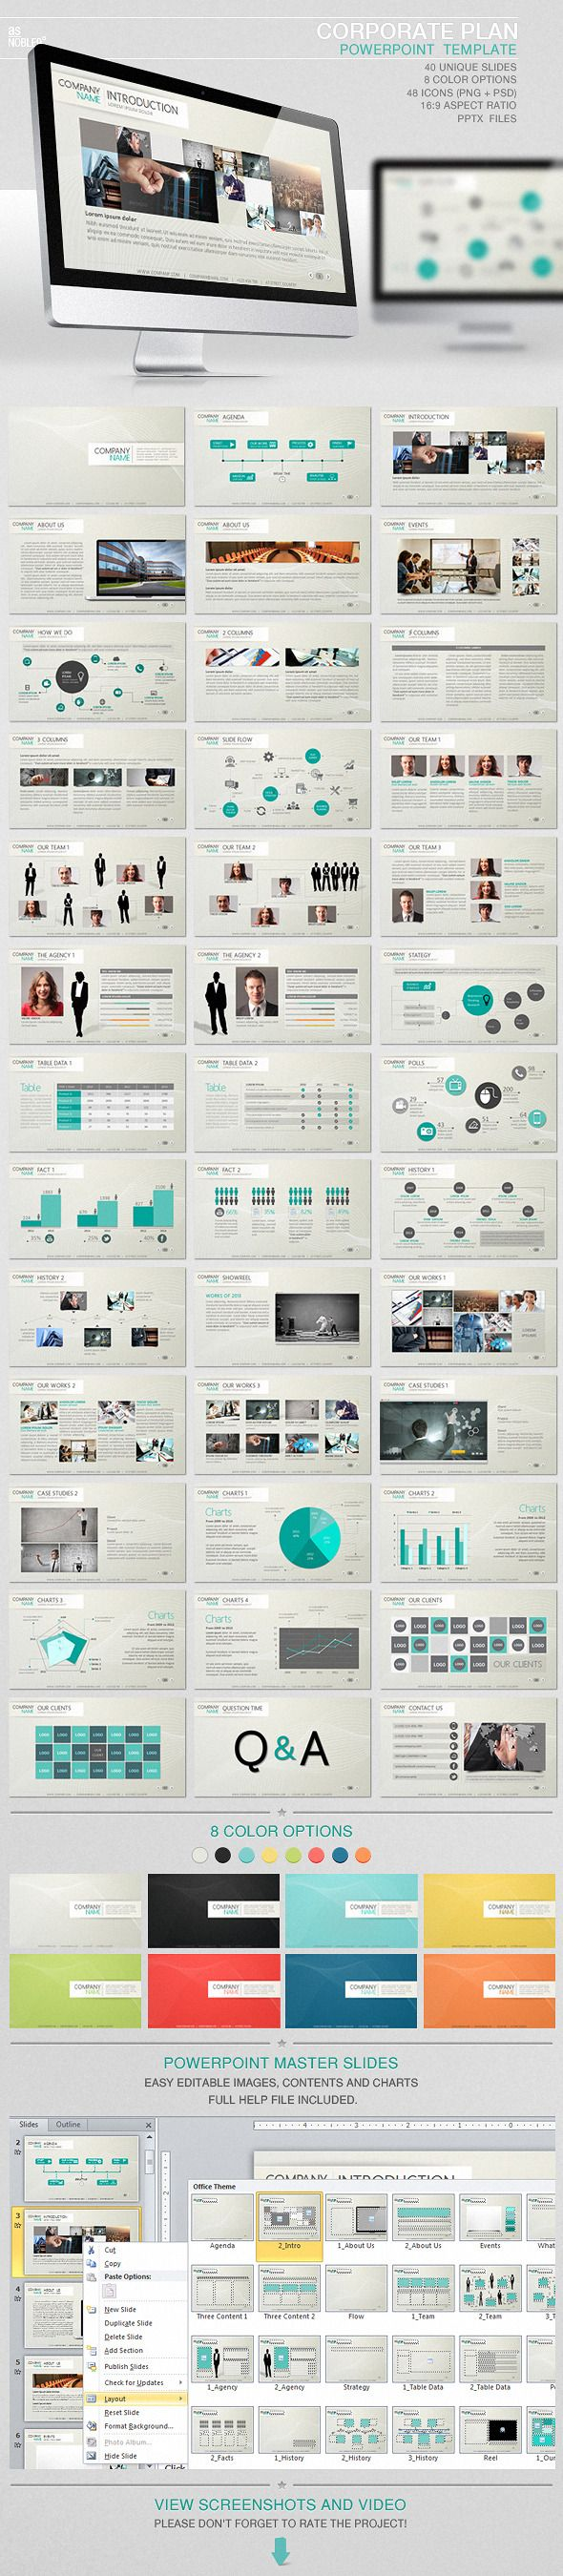 65 best PERSONNEL PLANNING // POWERPOINT TEMPLATES images on ...